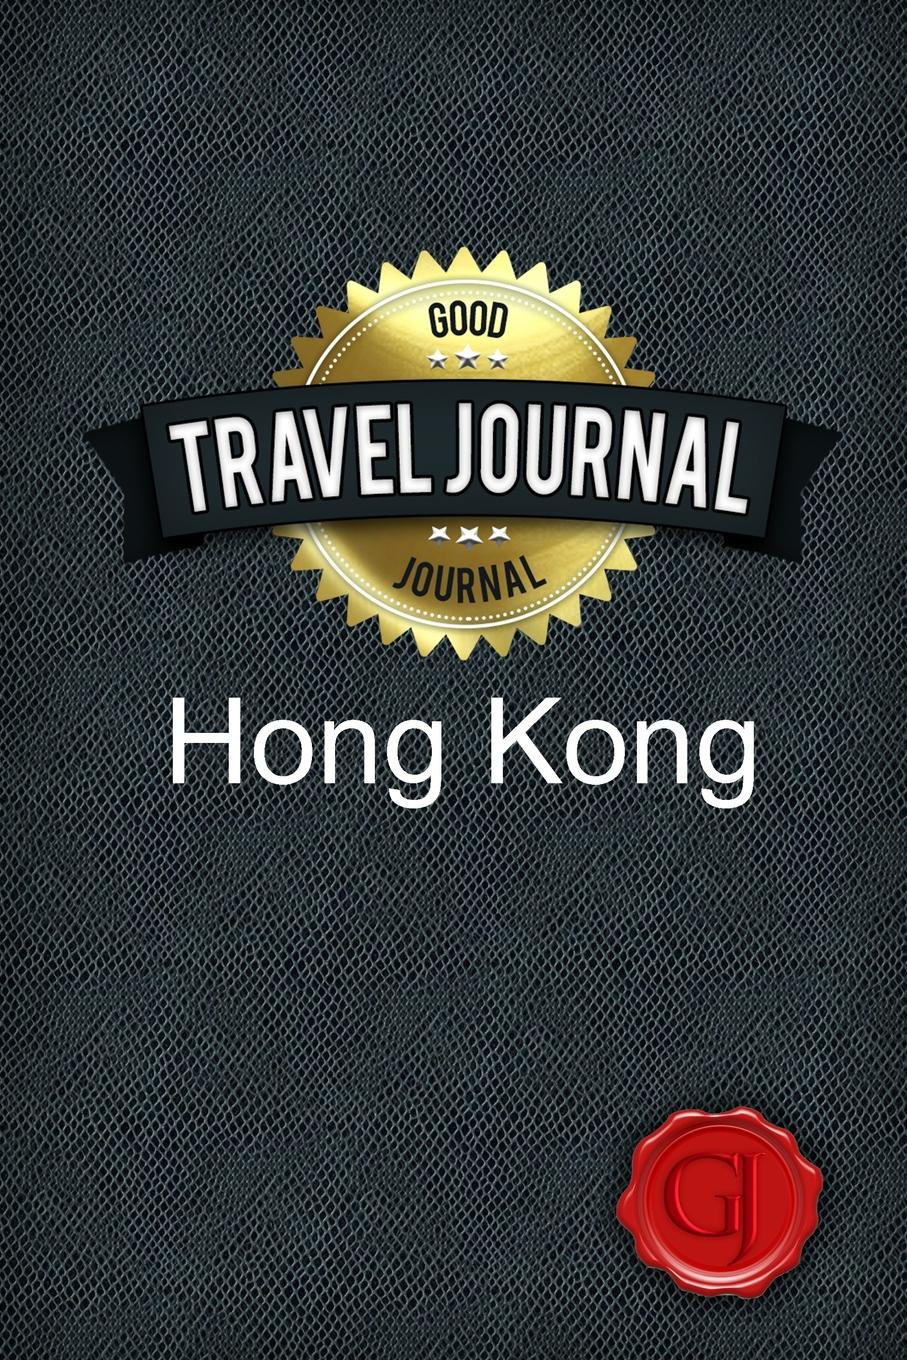 Good Journal Travel Journal Hong Kong